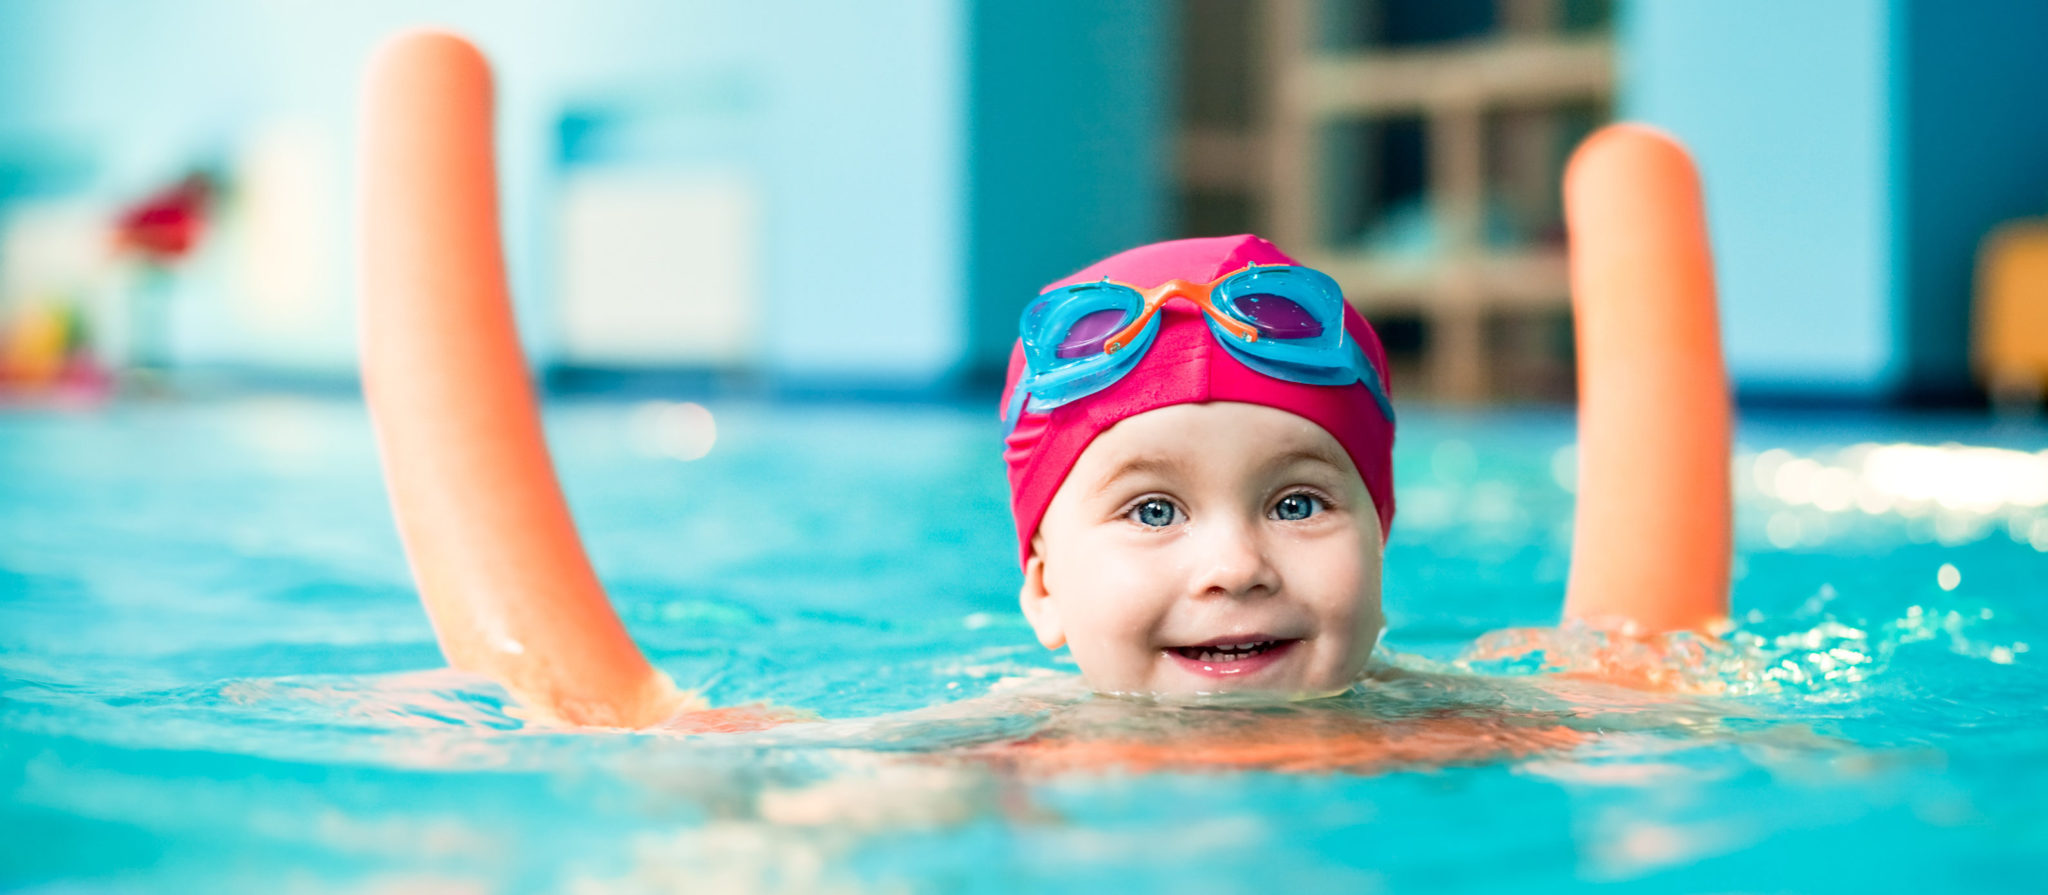 Children receive physical benefits and mental benefits from swimming and playing with pool toys.